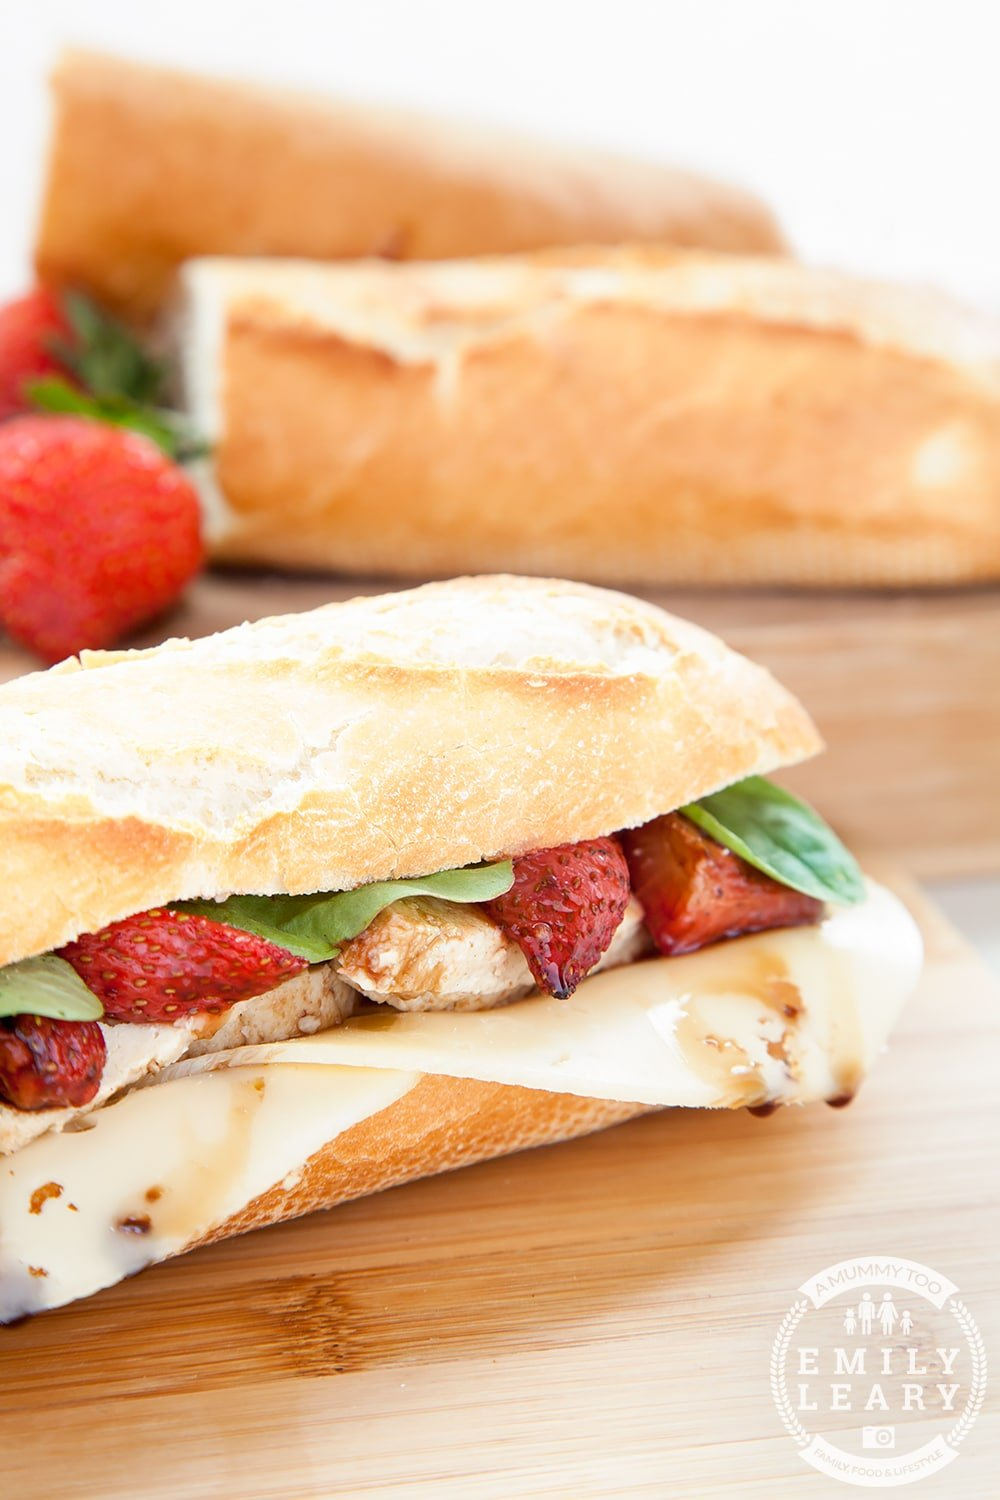 Balsamic roasted strawberry, Quorn and swiss cheese baguette - delicious and vegetarian! For those who love chicken swap out the Quorn for roasted chicken, to create a strawberry, chicken and swiss cheese baguette!